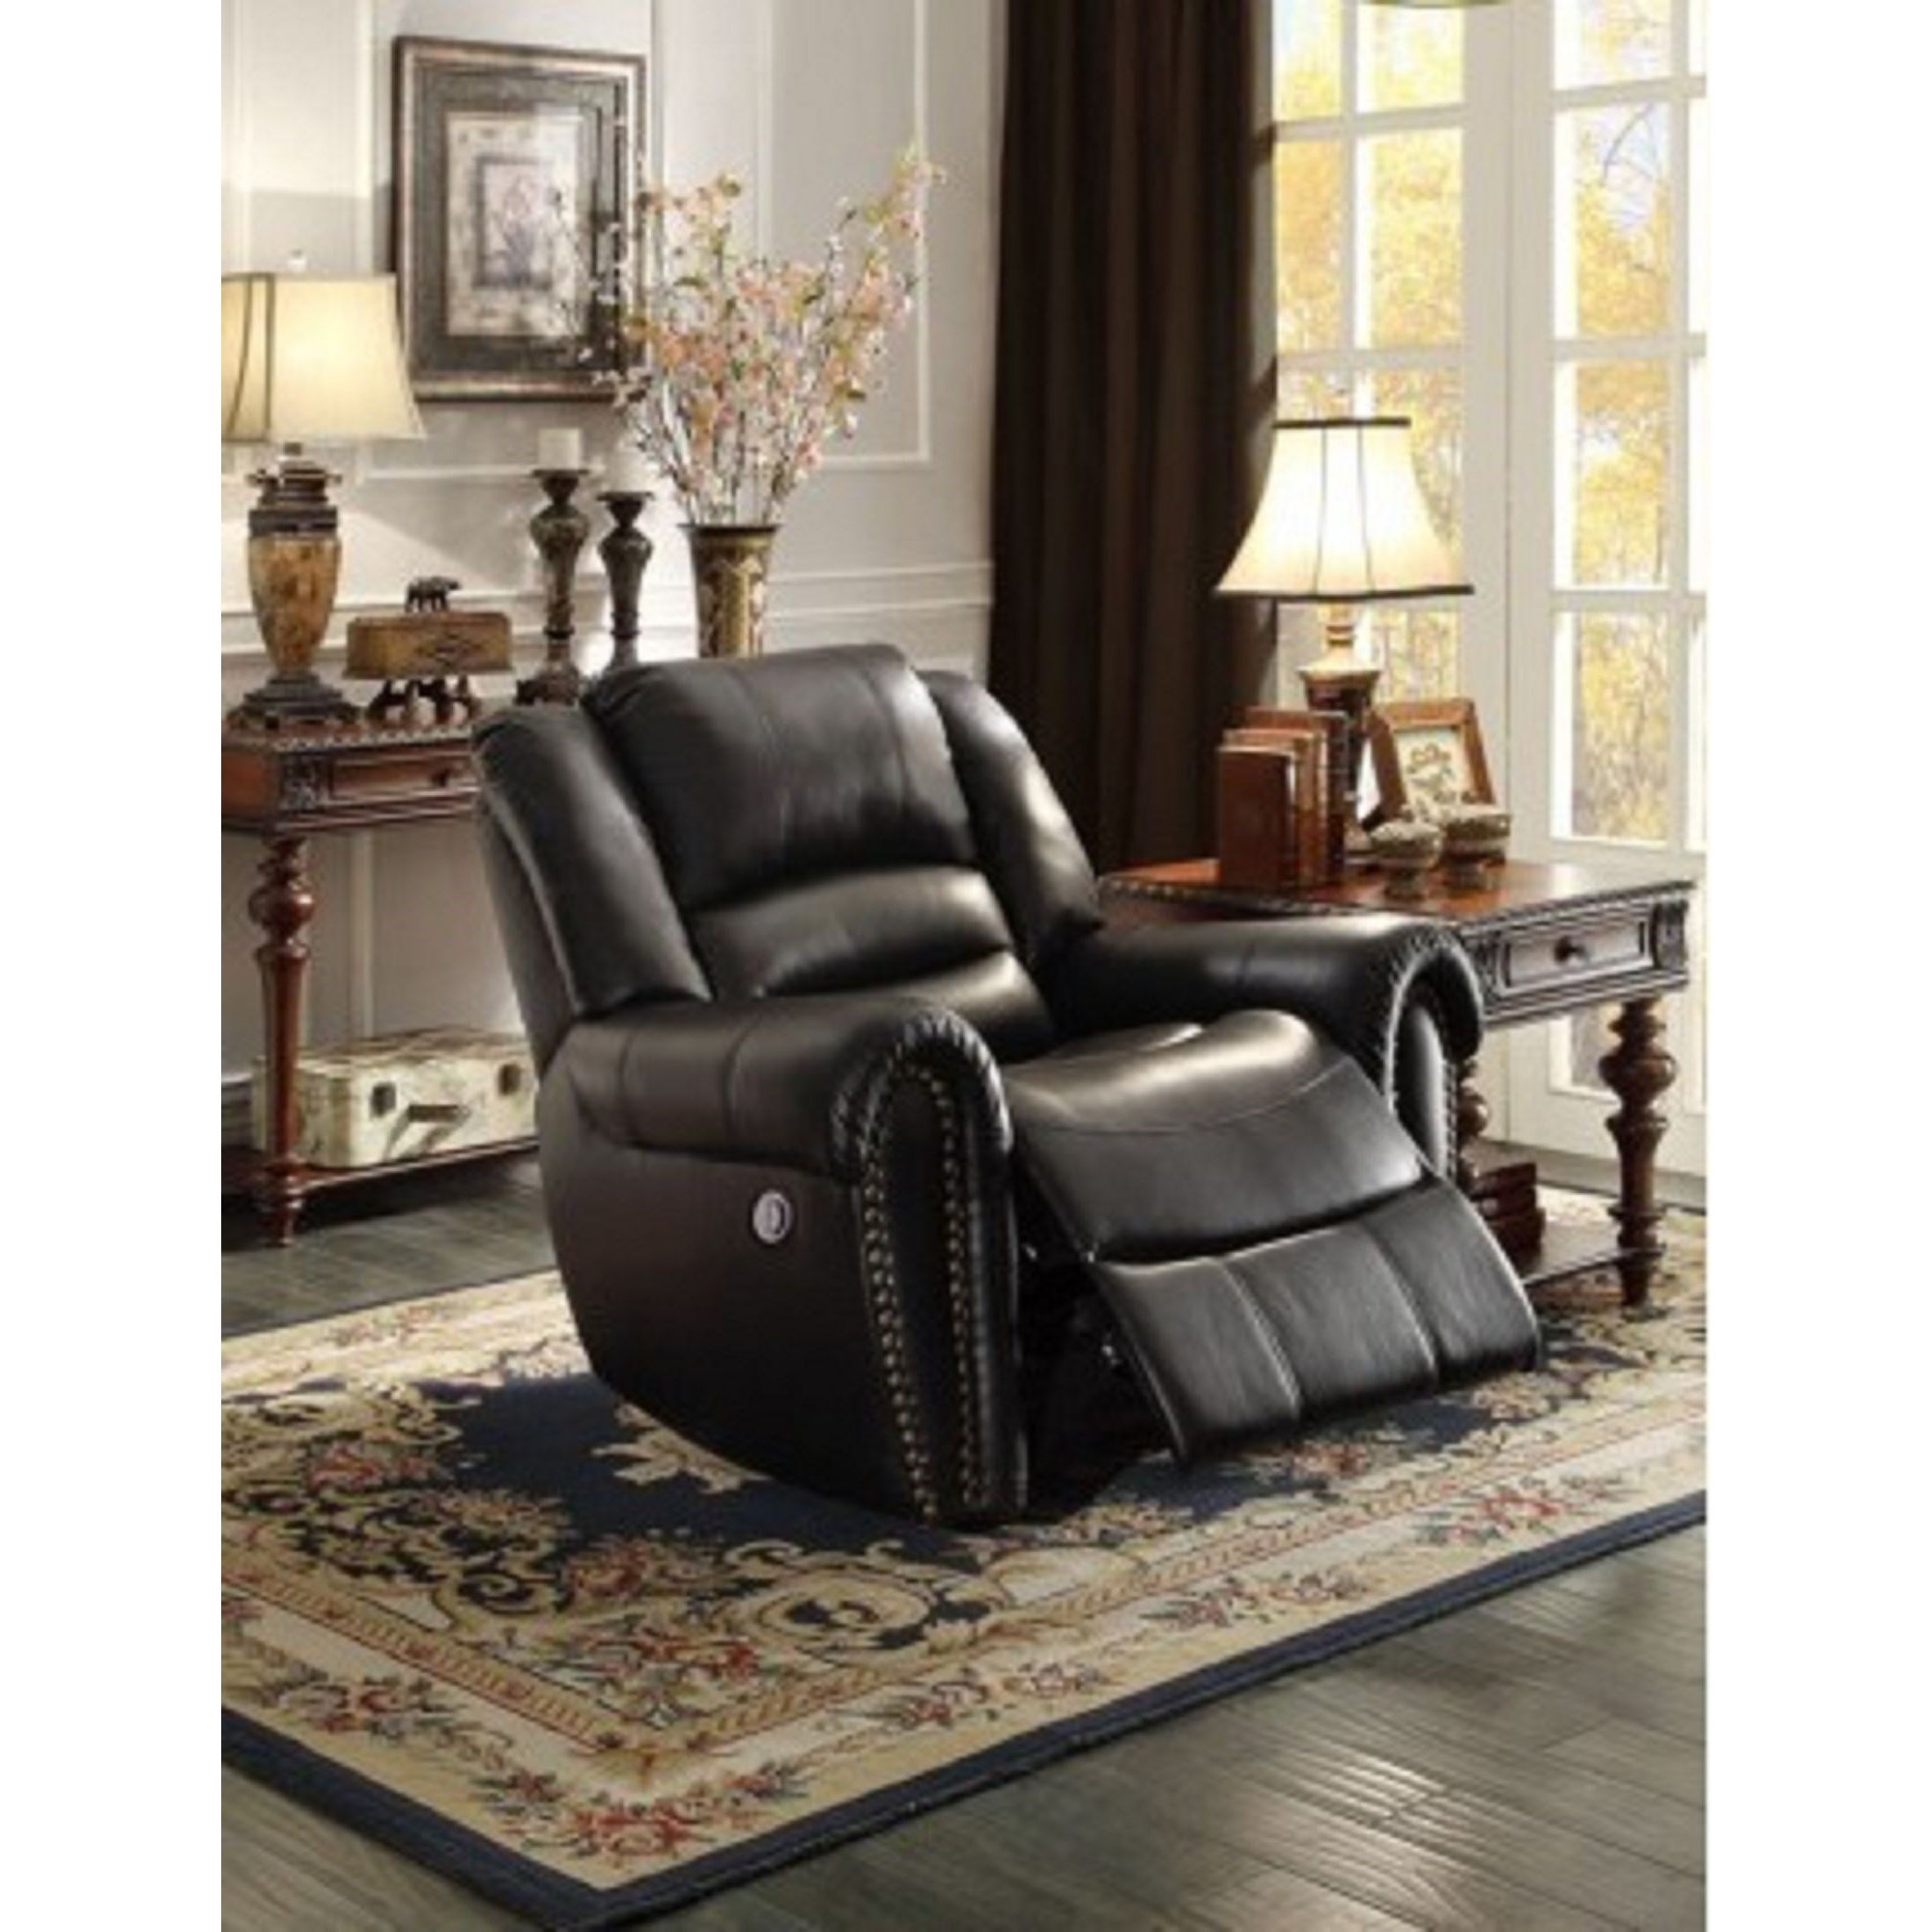 Homelegance Center Hill Traditional Gliding Recliner With Nailhead Trim Value City Furniture